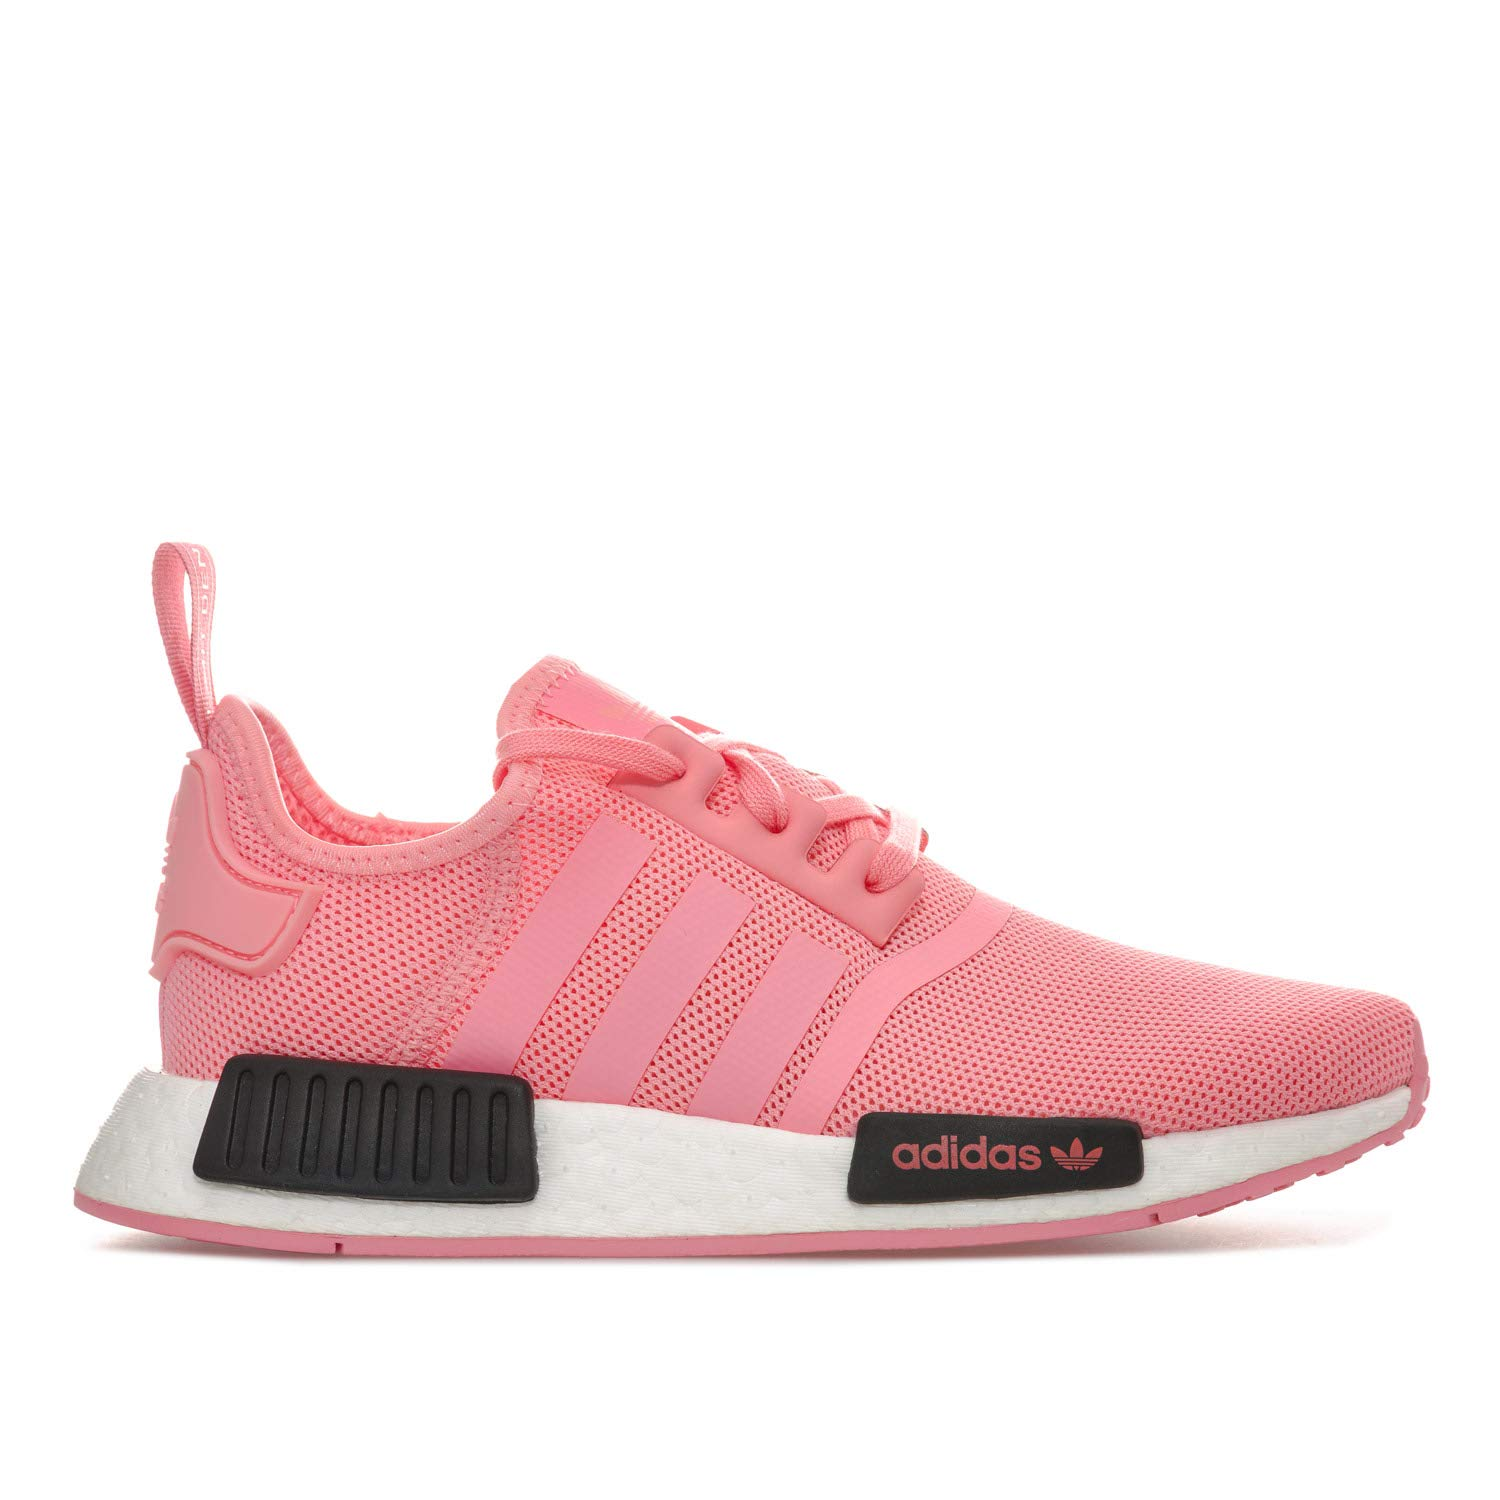 adidas Originals NMD_R1 Trainers whiteicey pink Women Shoes Sports Shoes L8FV2TTF8